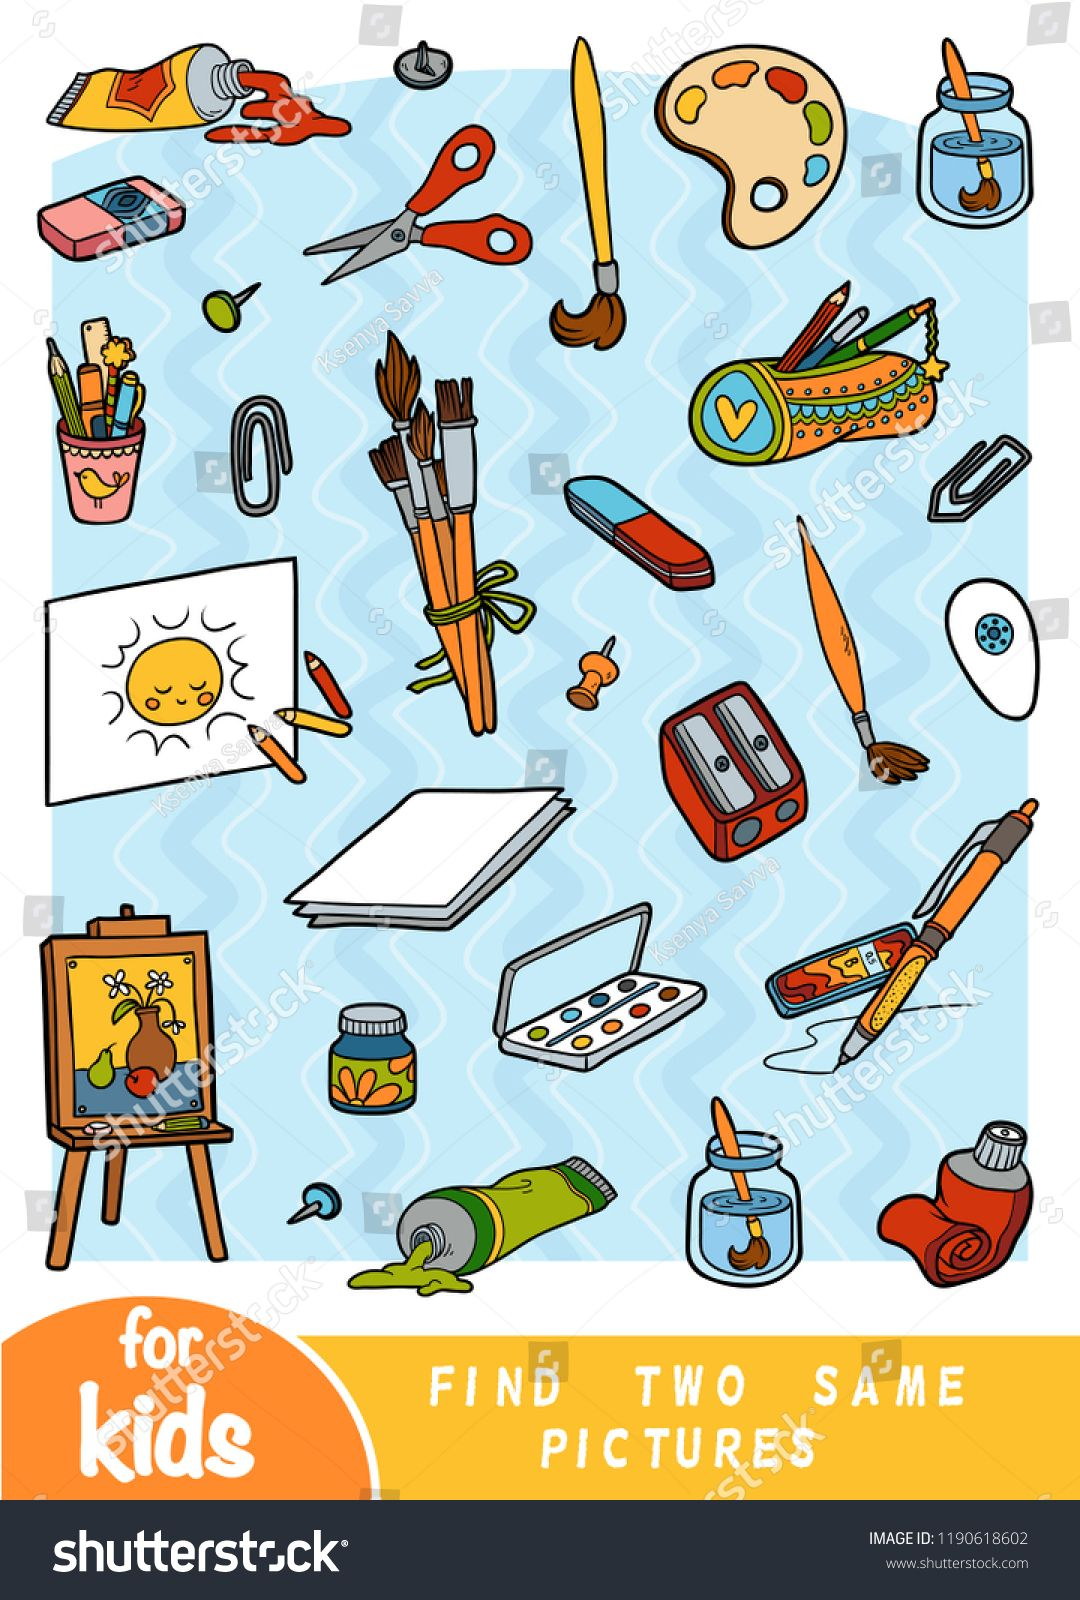 Find Two The Same Pictures Education Game For Children Color Set Of Artists Objects Education Game Find Pictures Color Set Logo Graphic Games For Kids